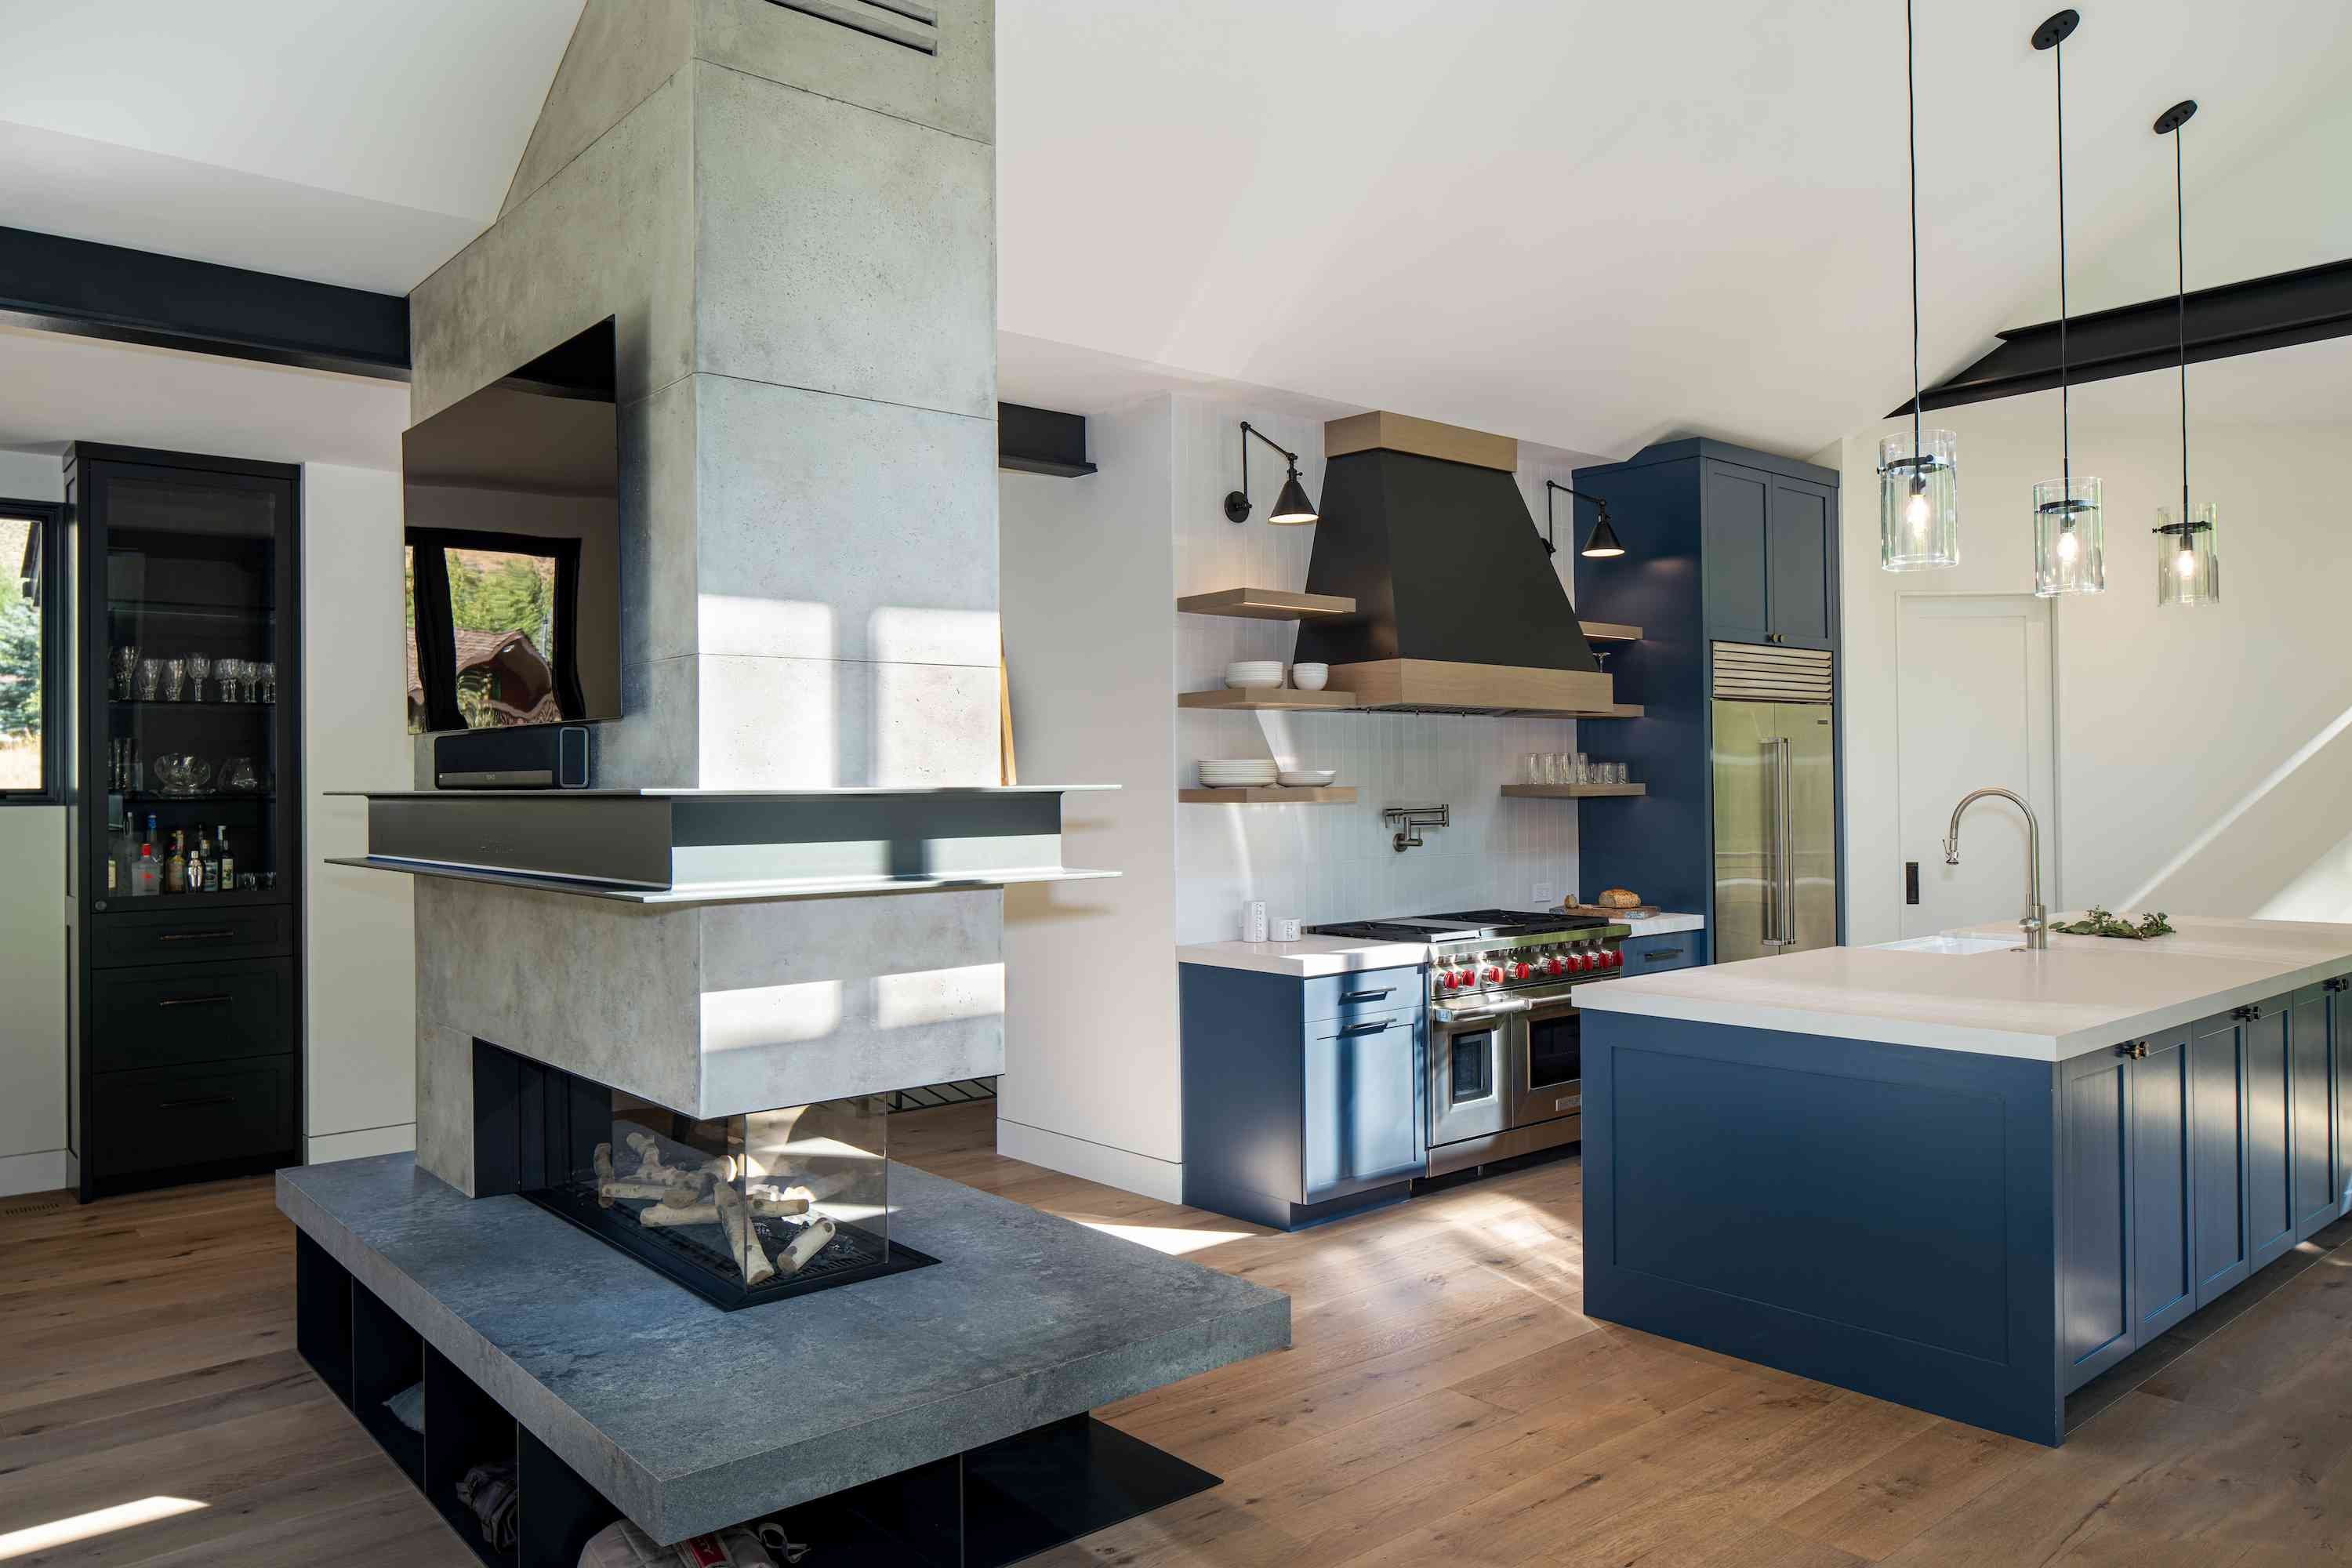 After shot of sleek modern kitchen with open fireplace.